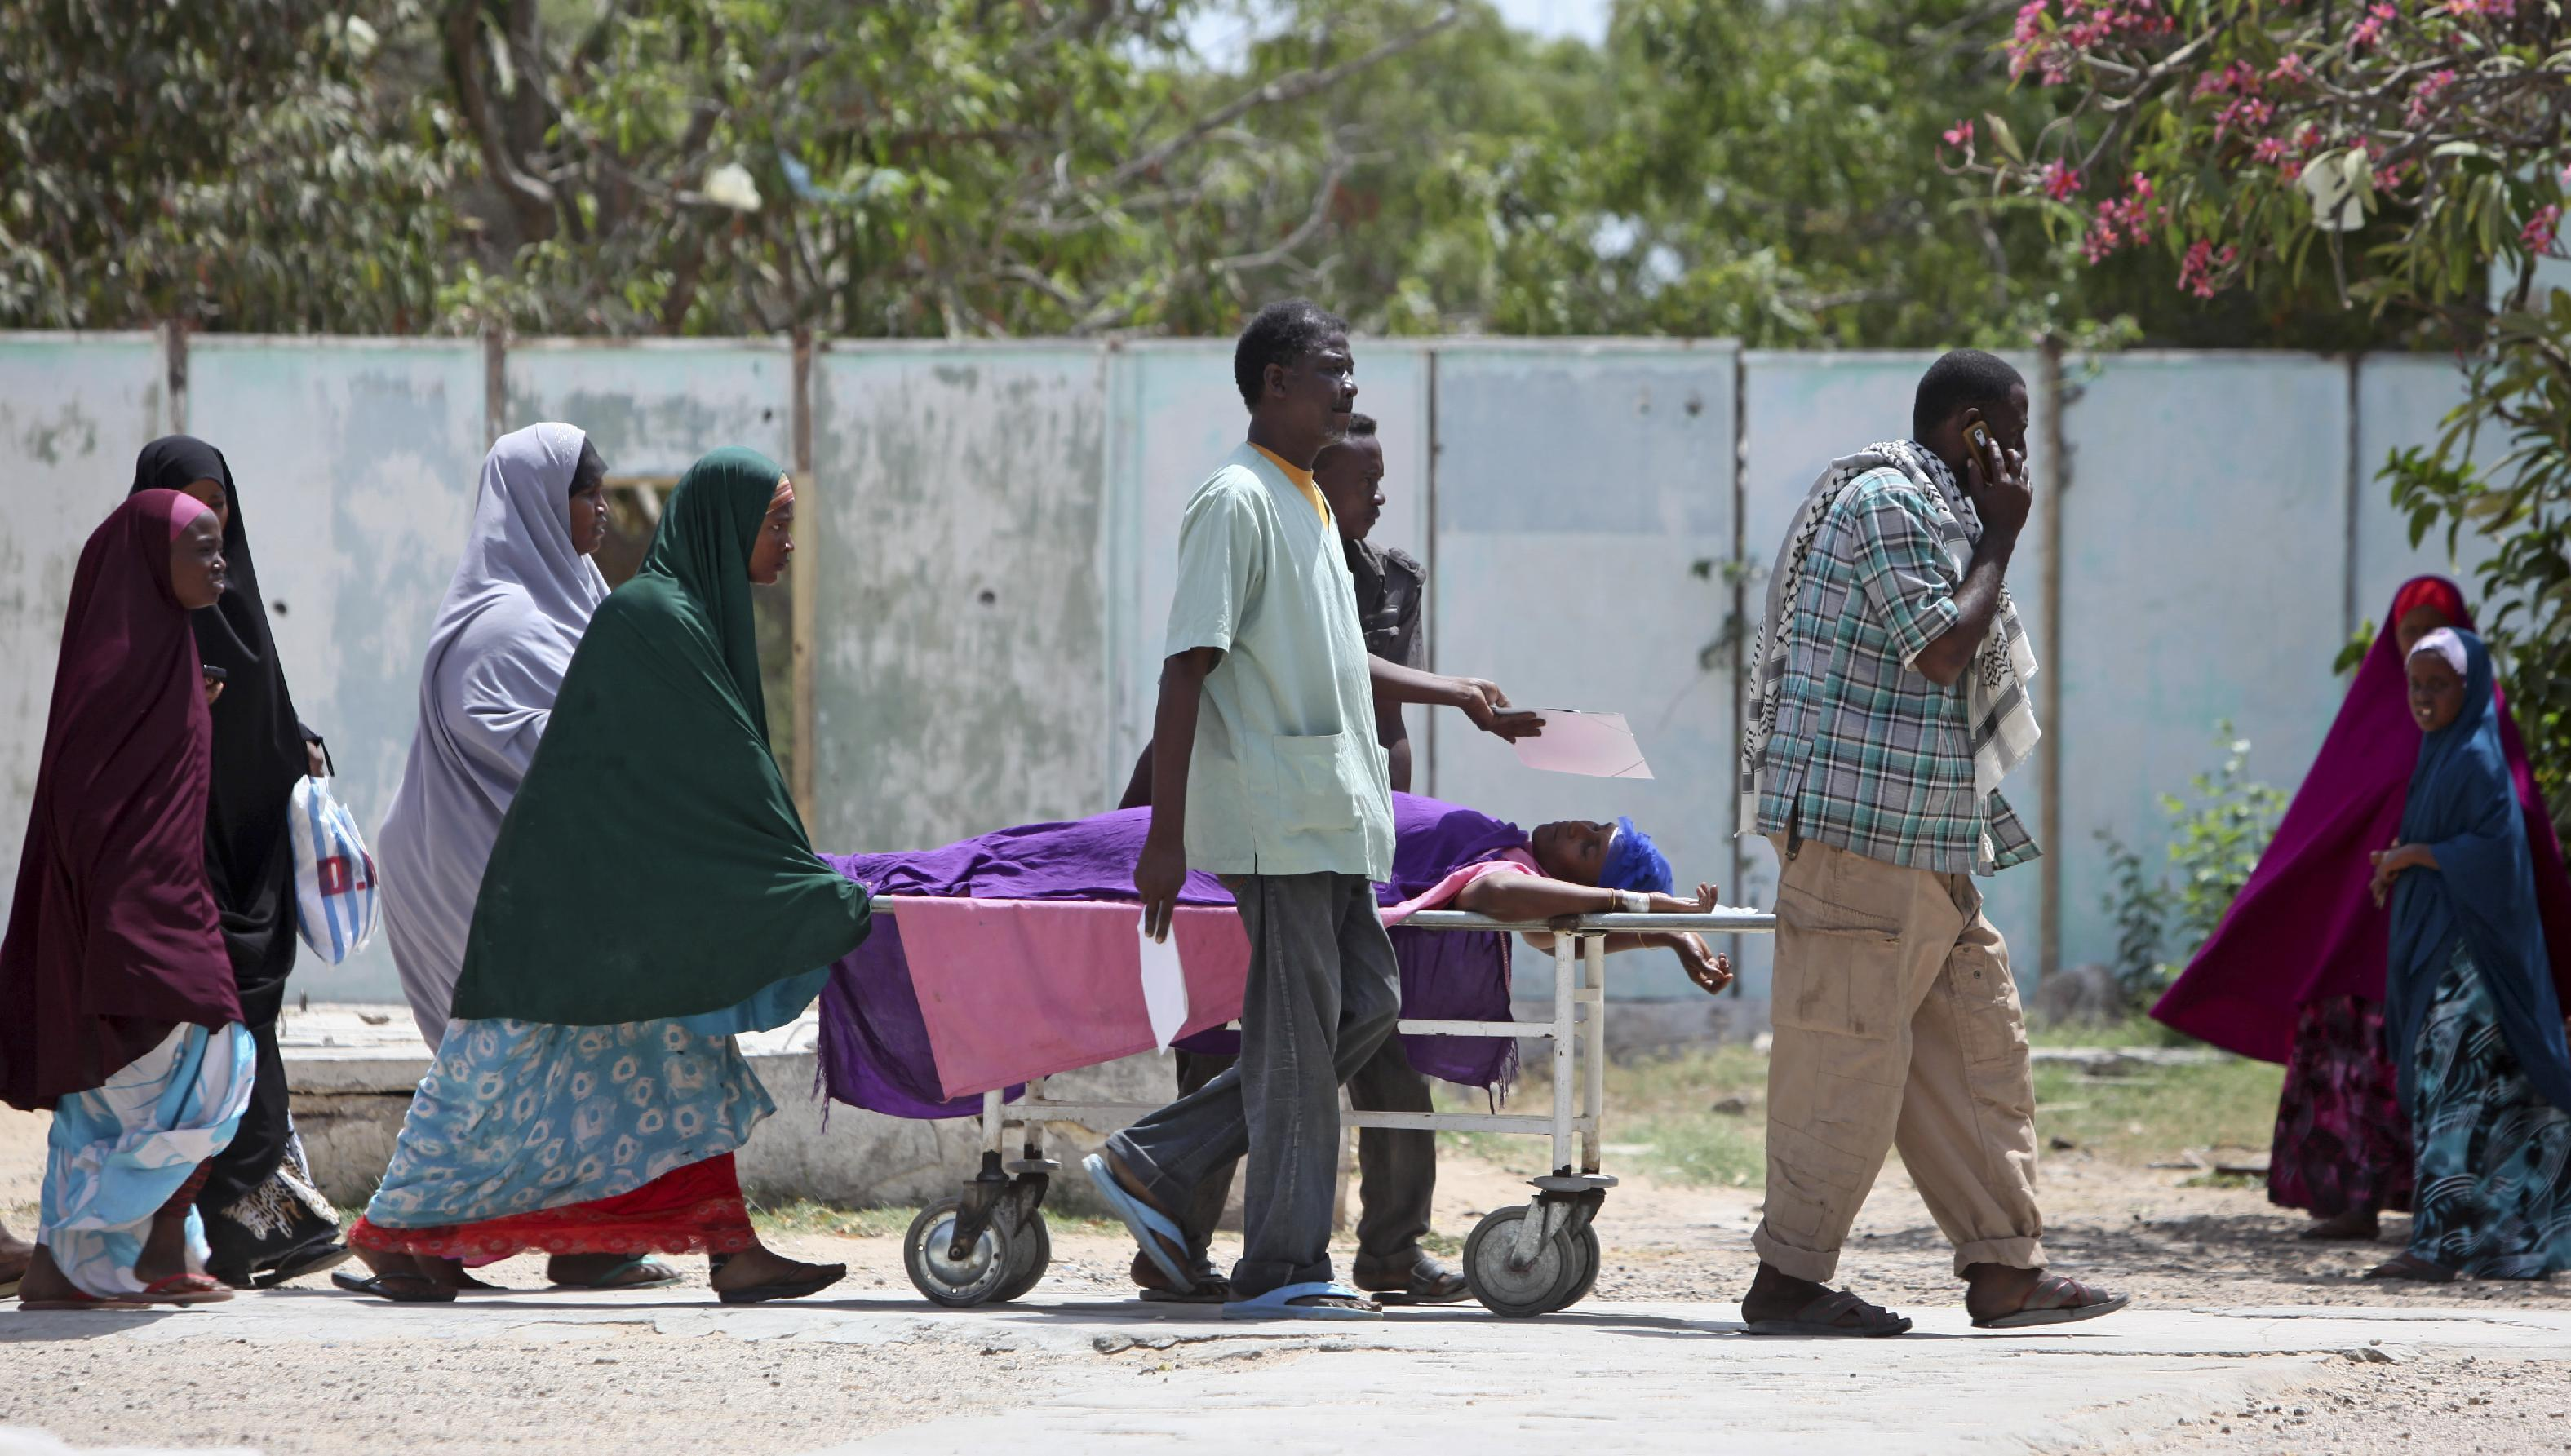 Mortar shells land by Somalia's presidential palace